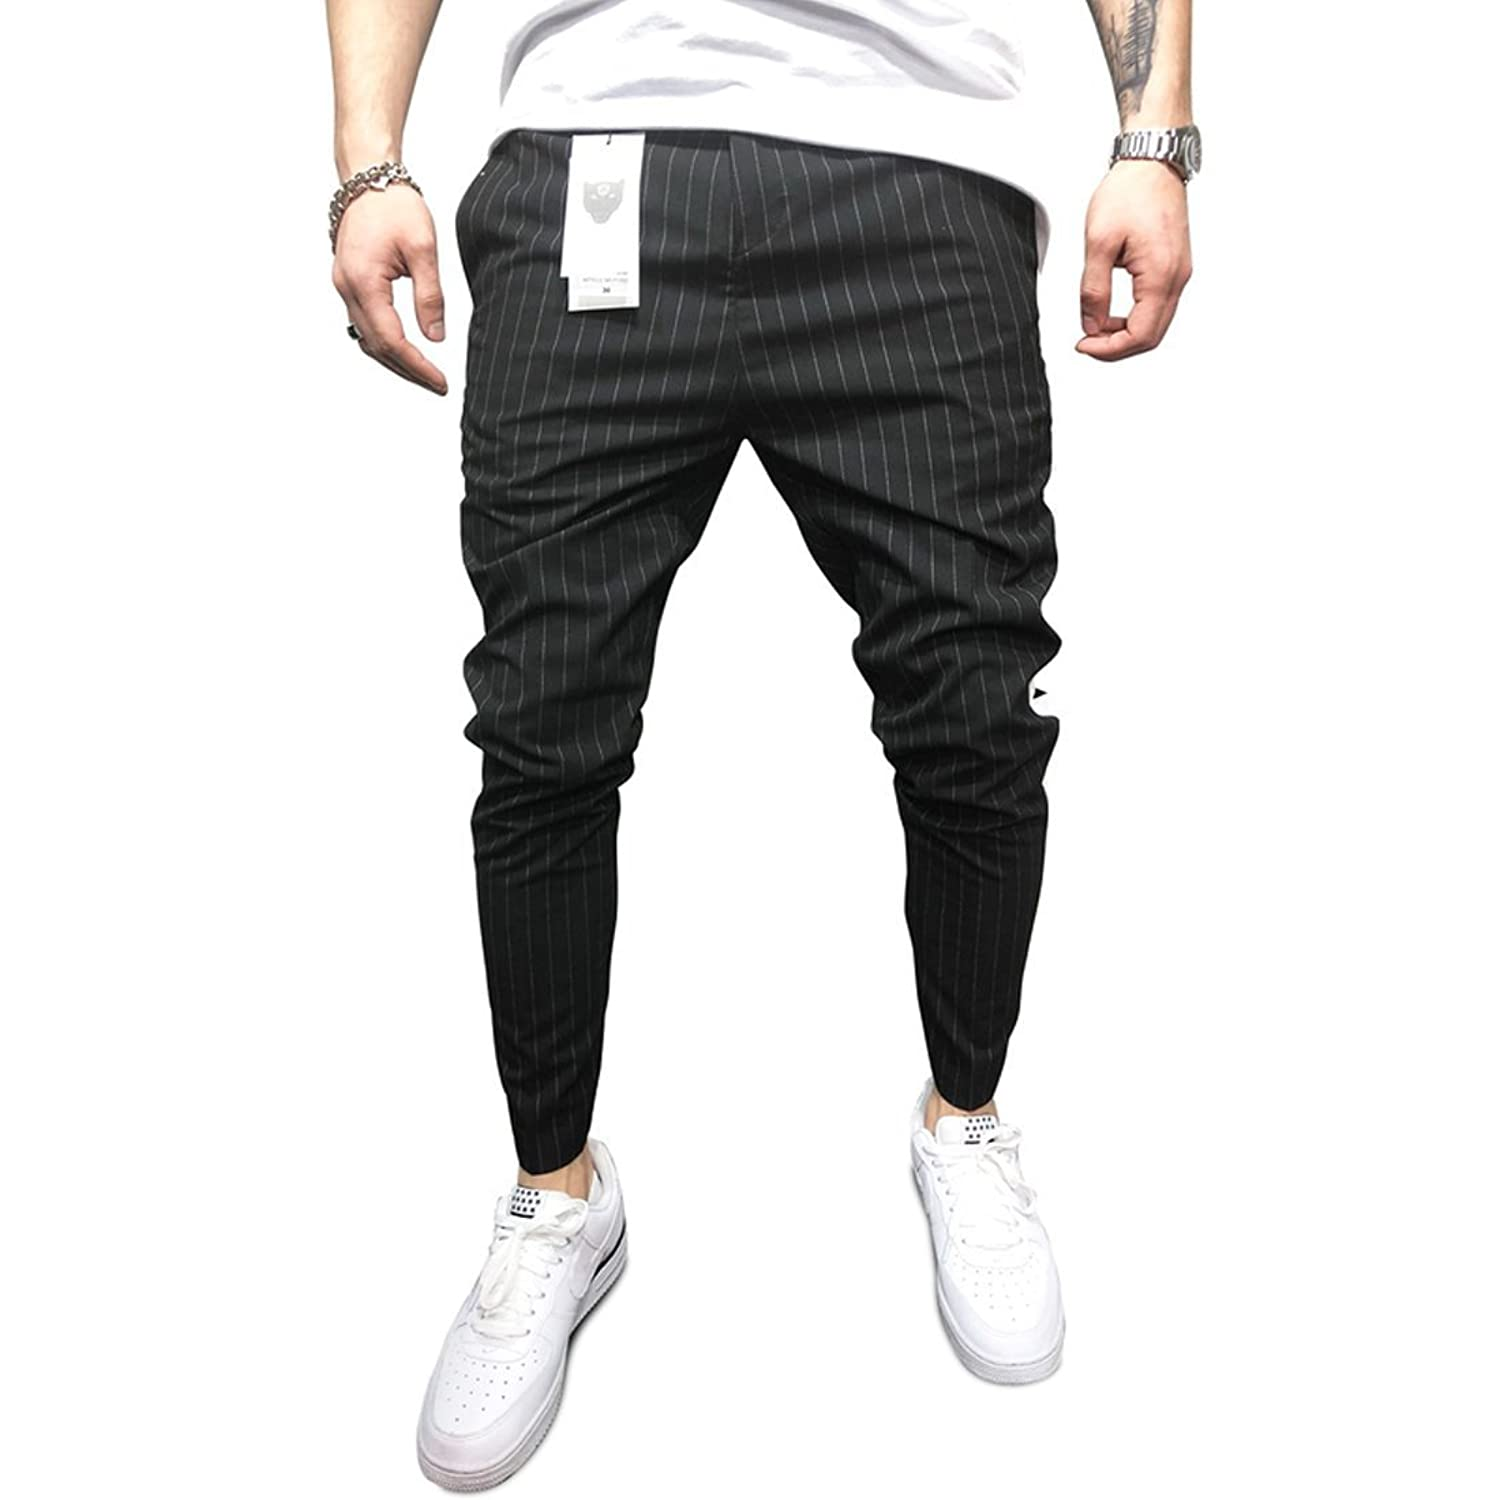 b5affe3241 Top 10 wholesale Brand Streetwear - Chinabrands.com